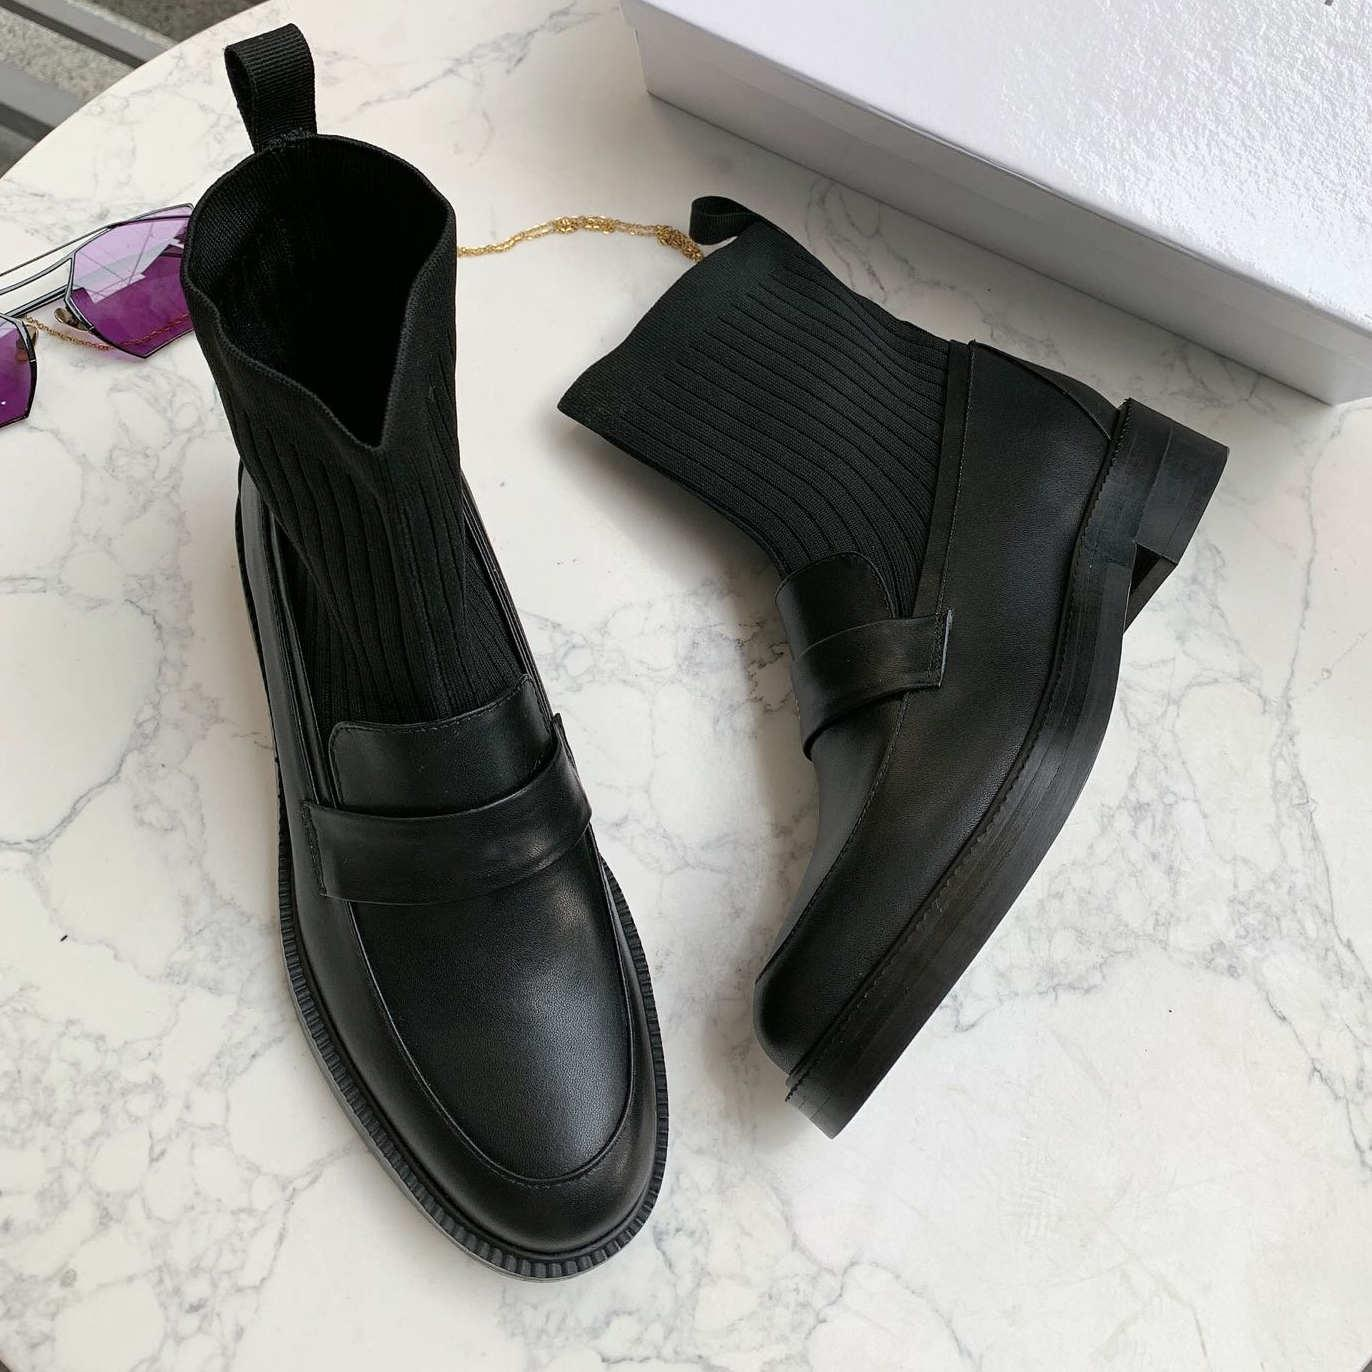 2019 Chaussures Casual Femmes Marque Designer Lady High Fashion OL Office Lady Chaussures Printemps noir Automne cuir véritable Lighted Street Style 99172CE